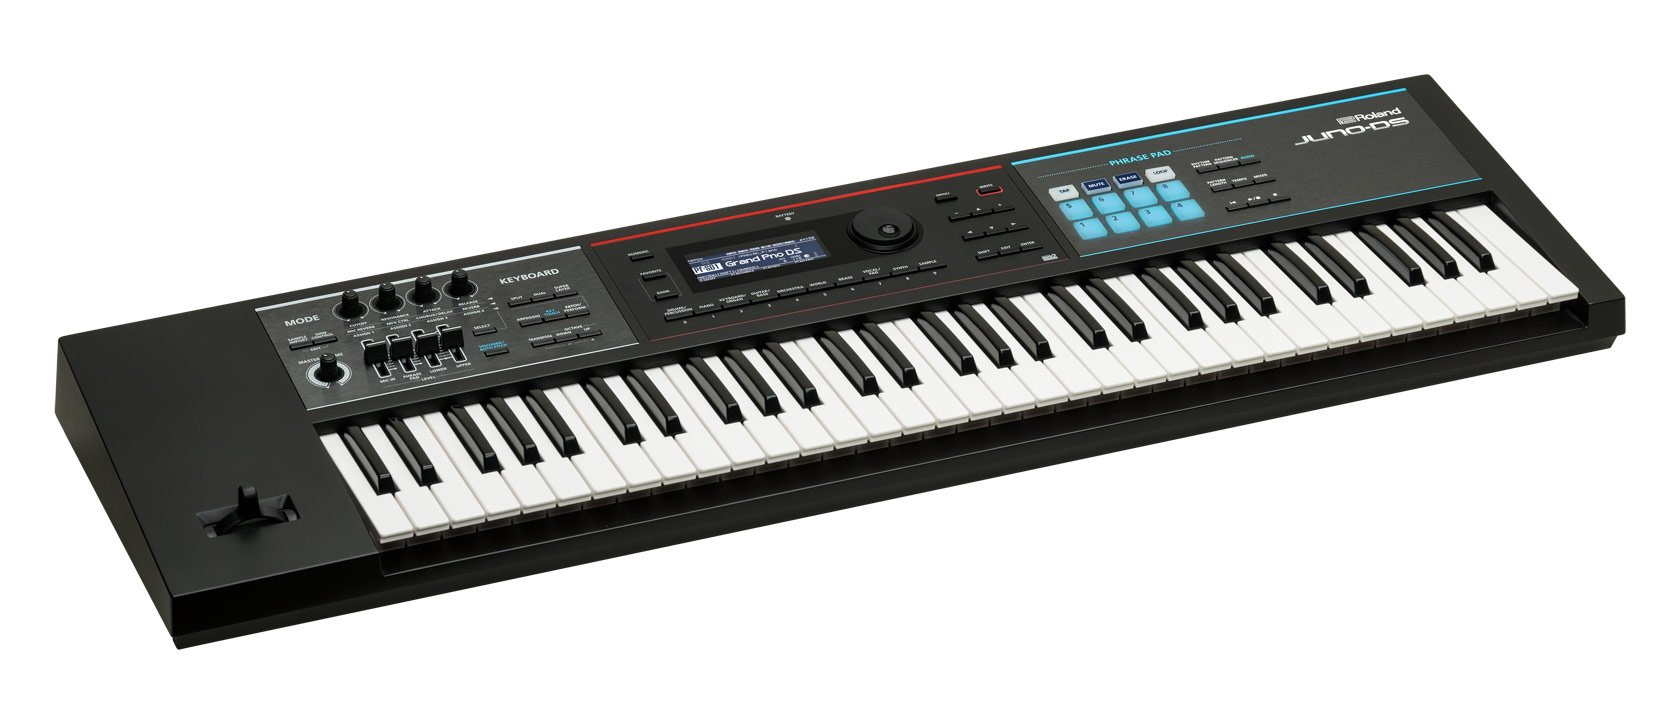 2. Roland JUNO-DS61 61-key Synthesizer